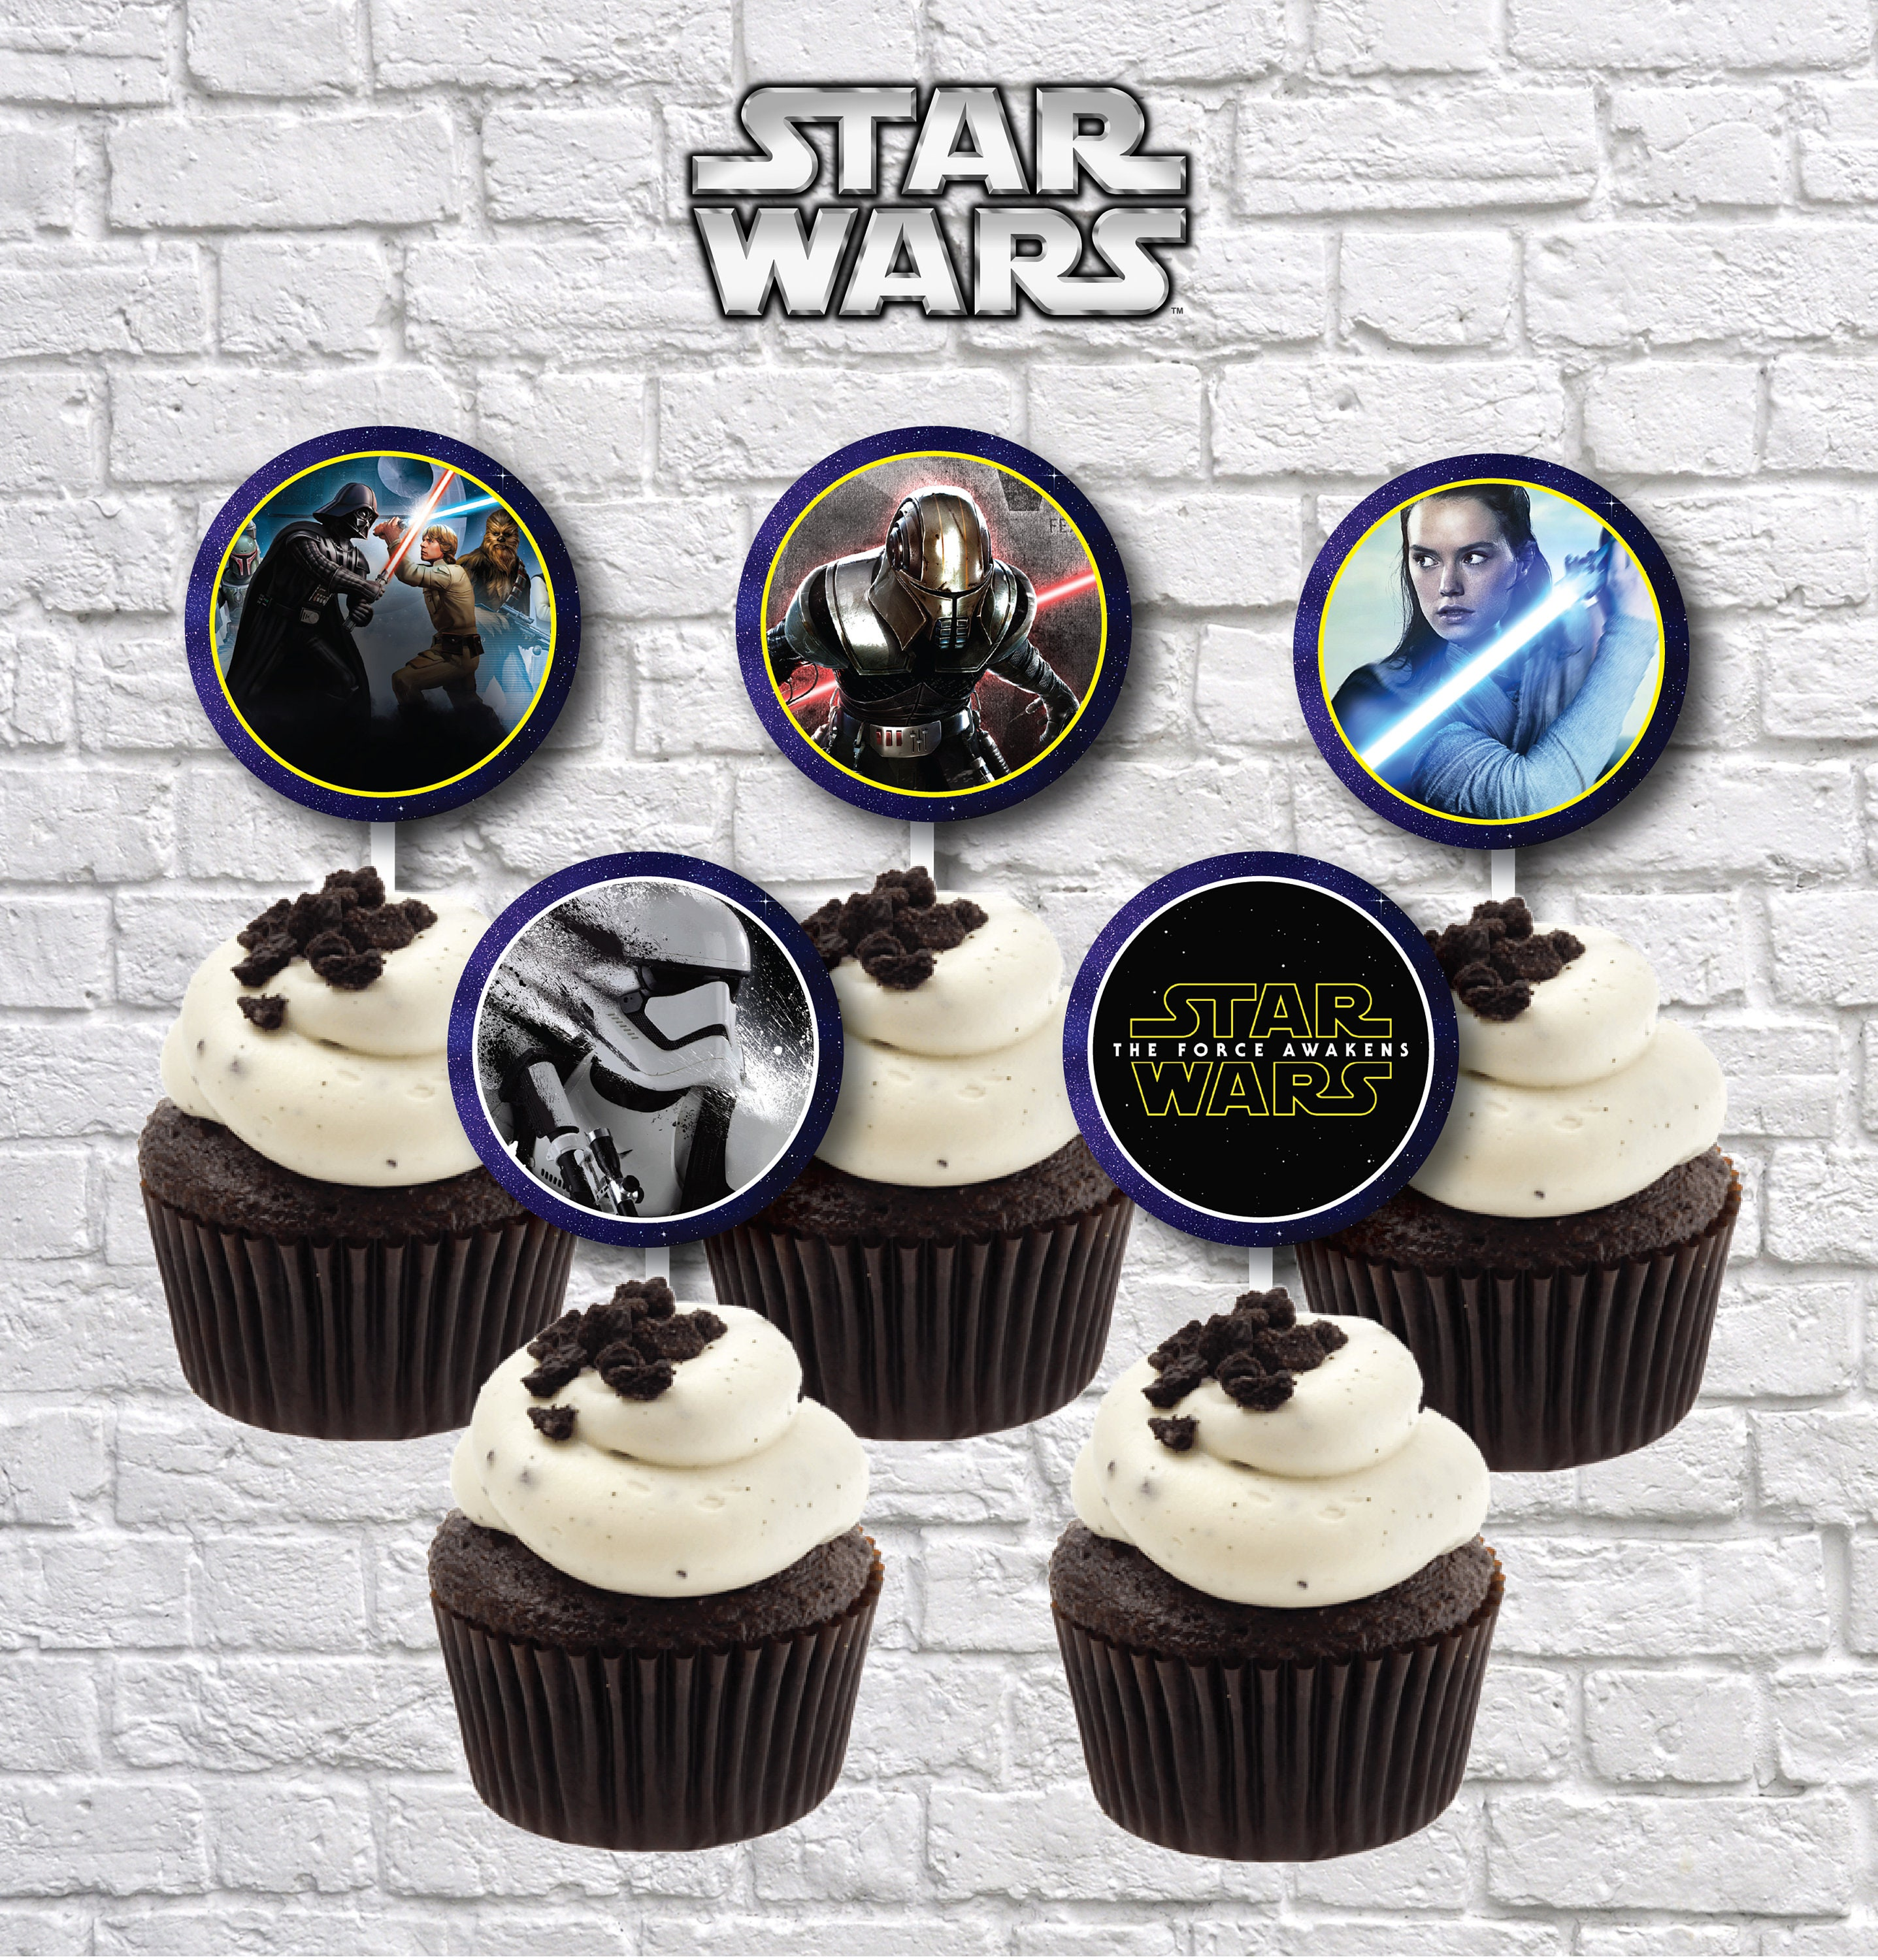 Incredible Star Wars Printable Cupcake Topper Star Wars Party Supplies Etsy Personalised Birthday Cards Fashionlily Jamesorg